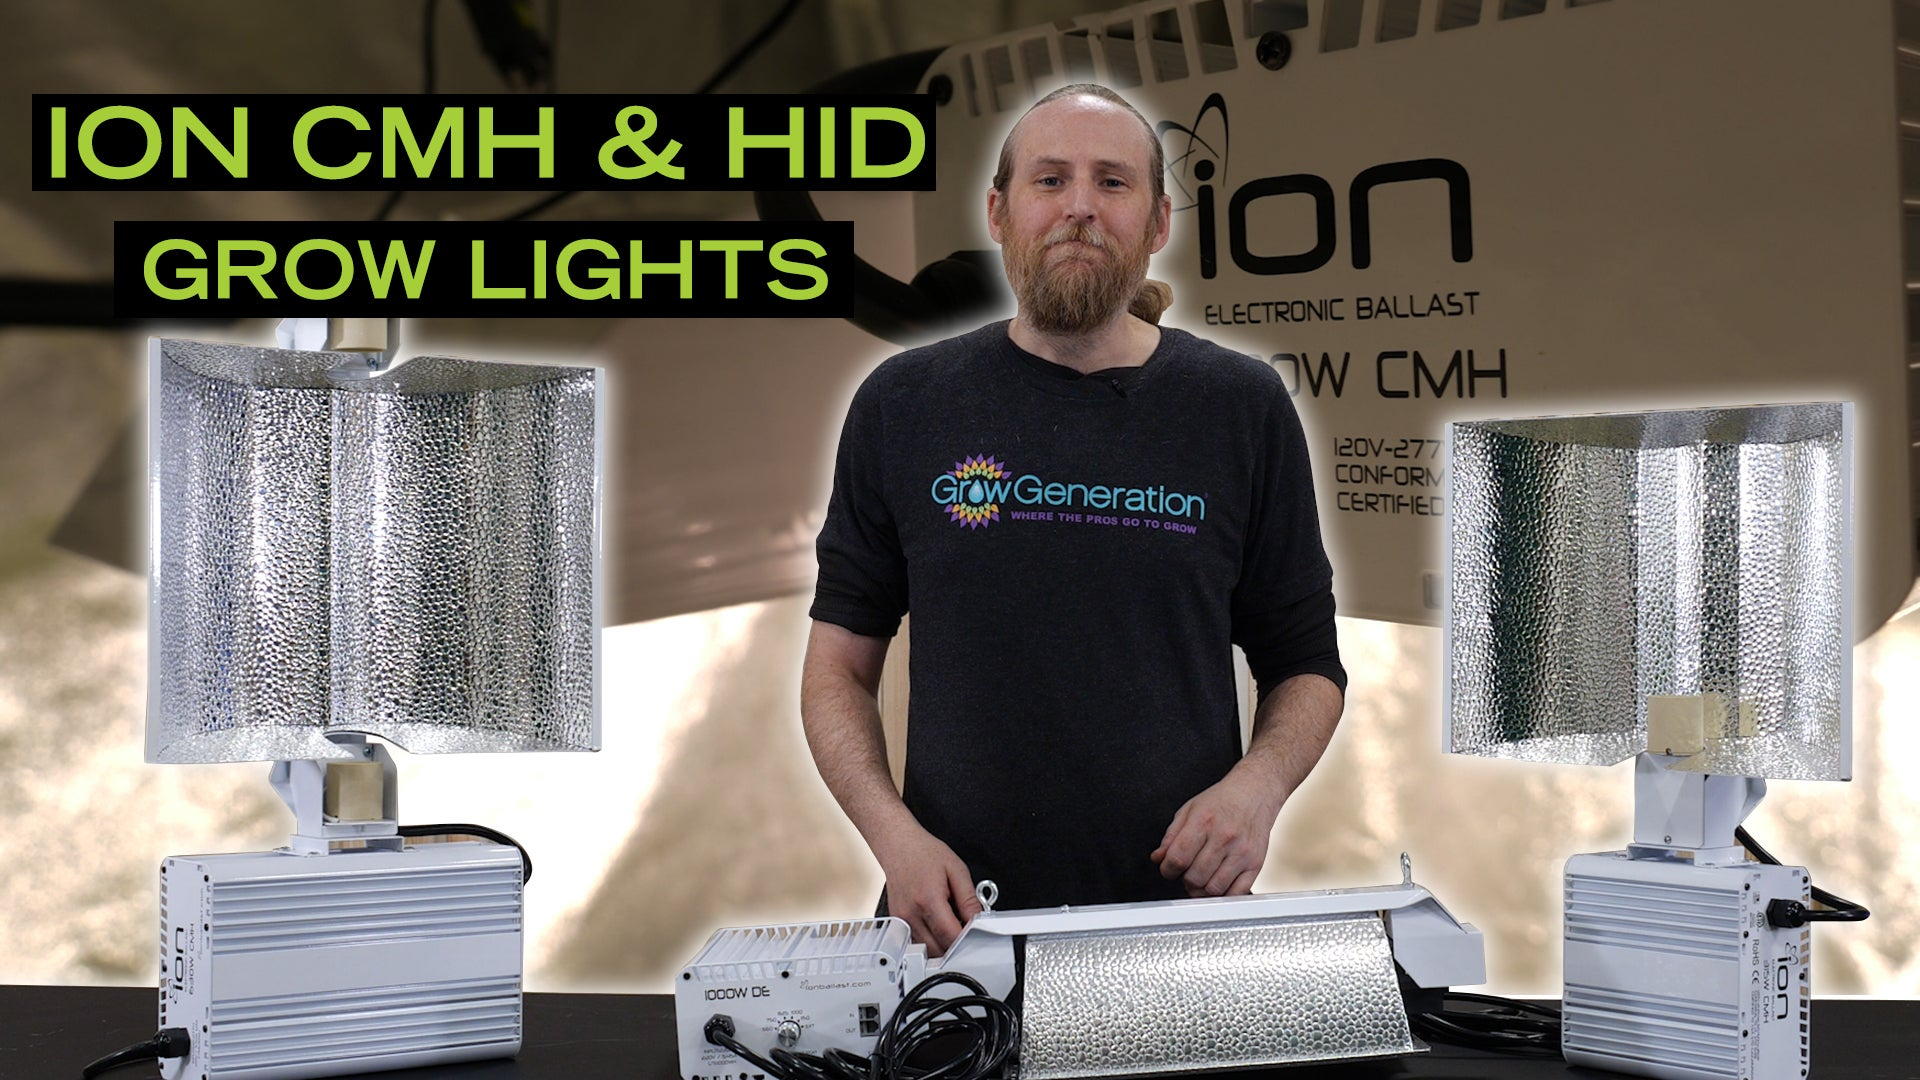 ION HID & CMH Grow Lights - GrowGeneration Exclusive